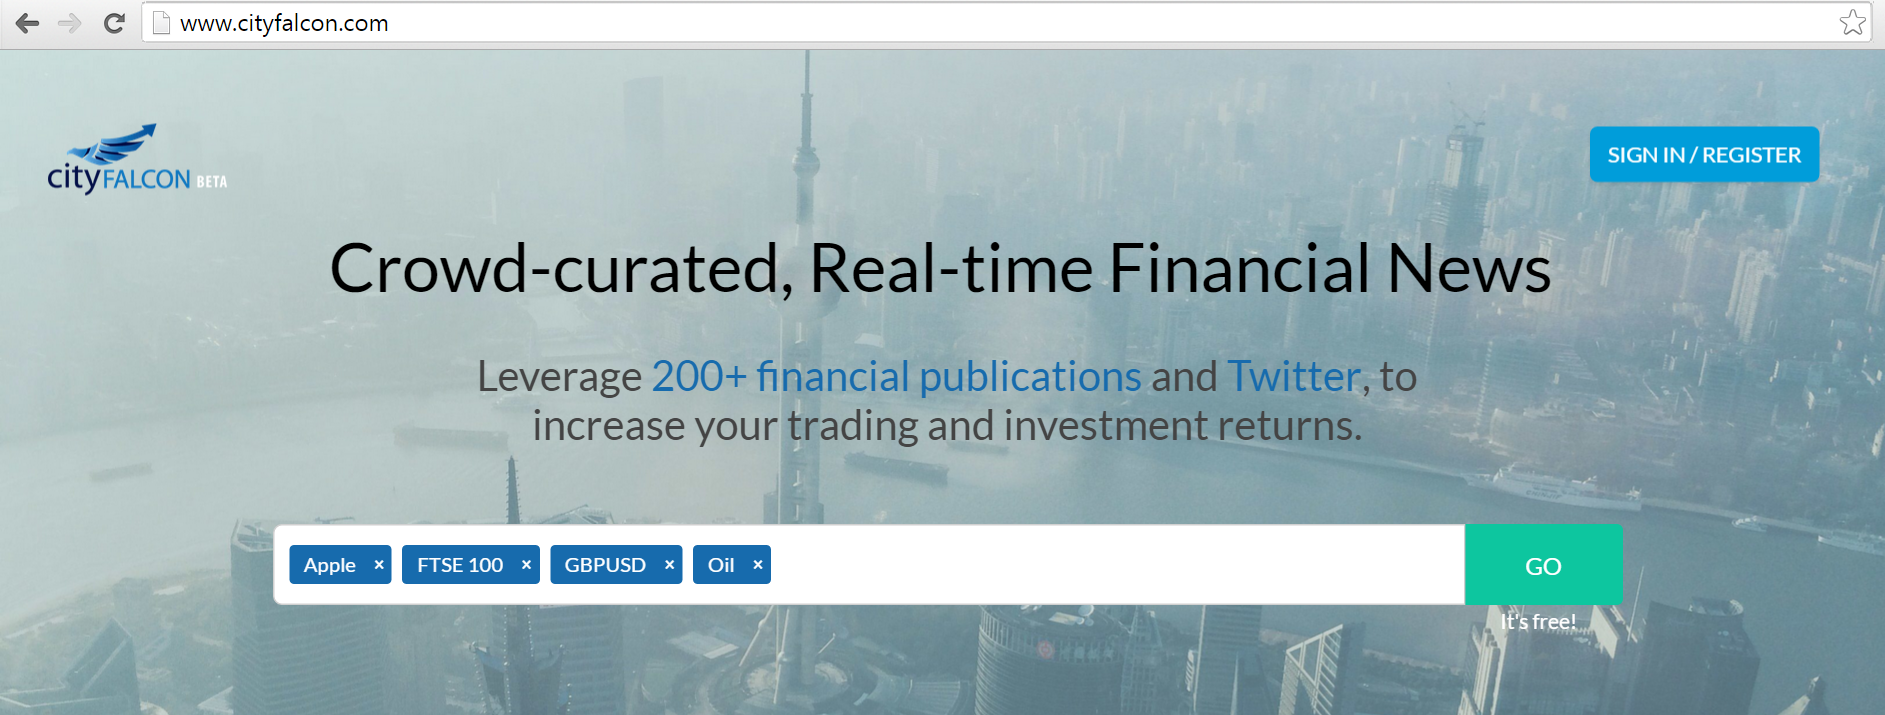 Featured Startup Pitch: CityFALCON - Making financial news and analysis more widely available